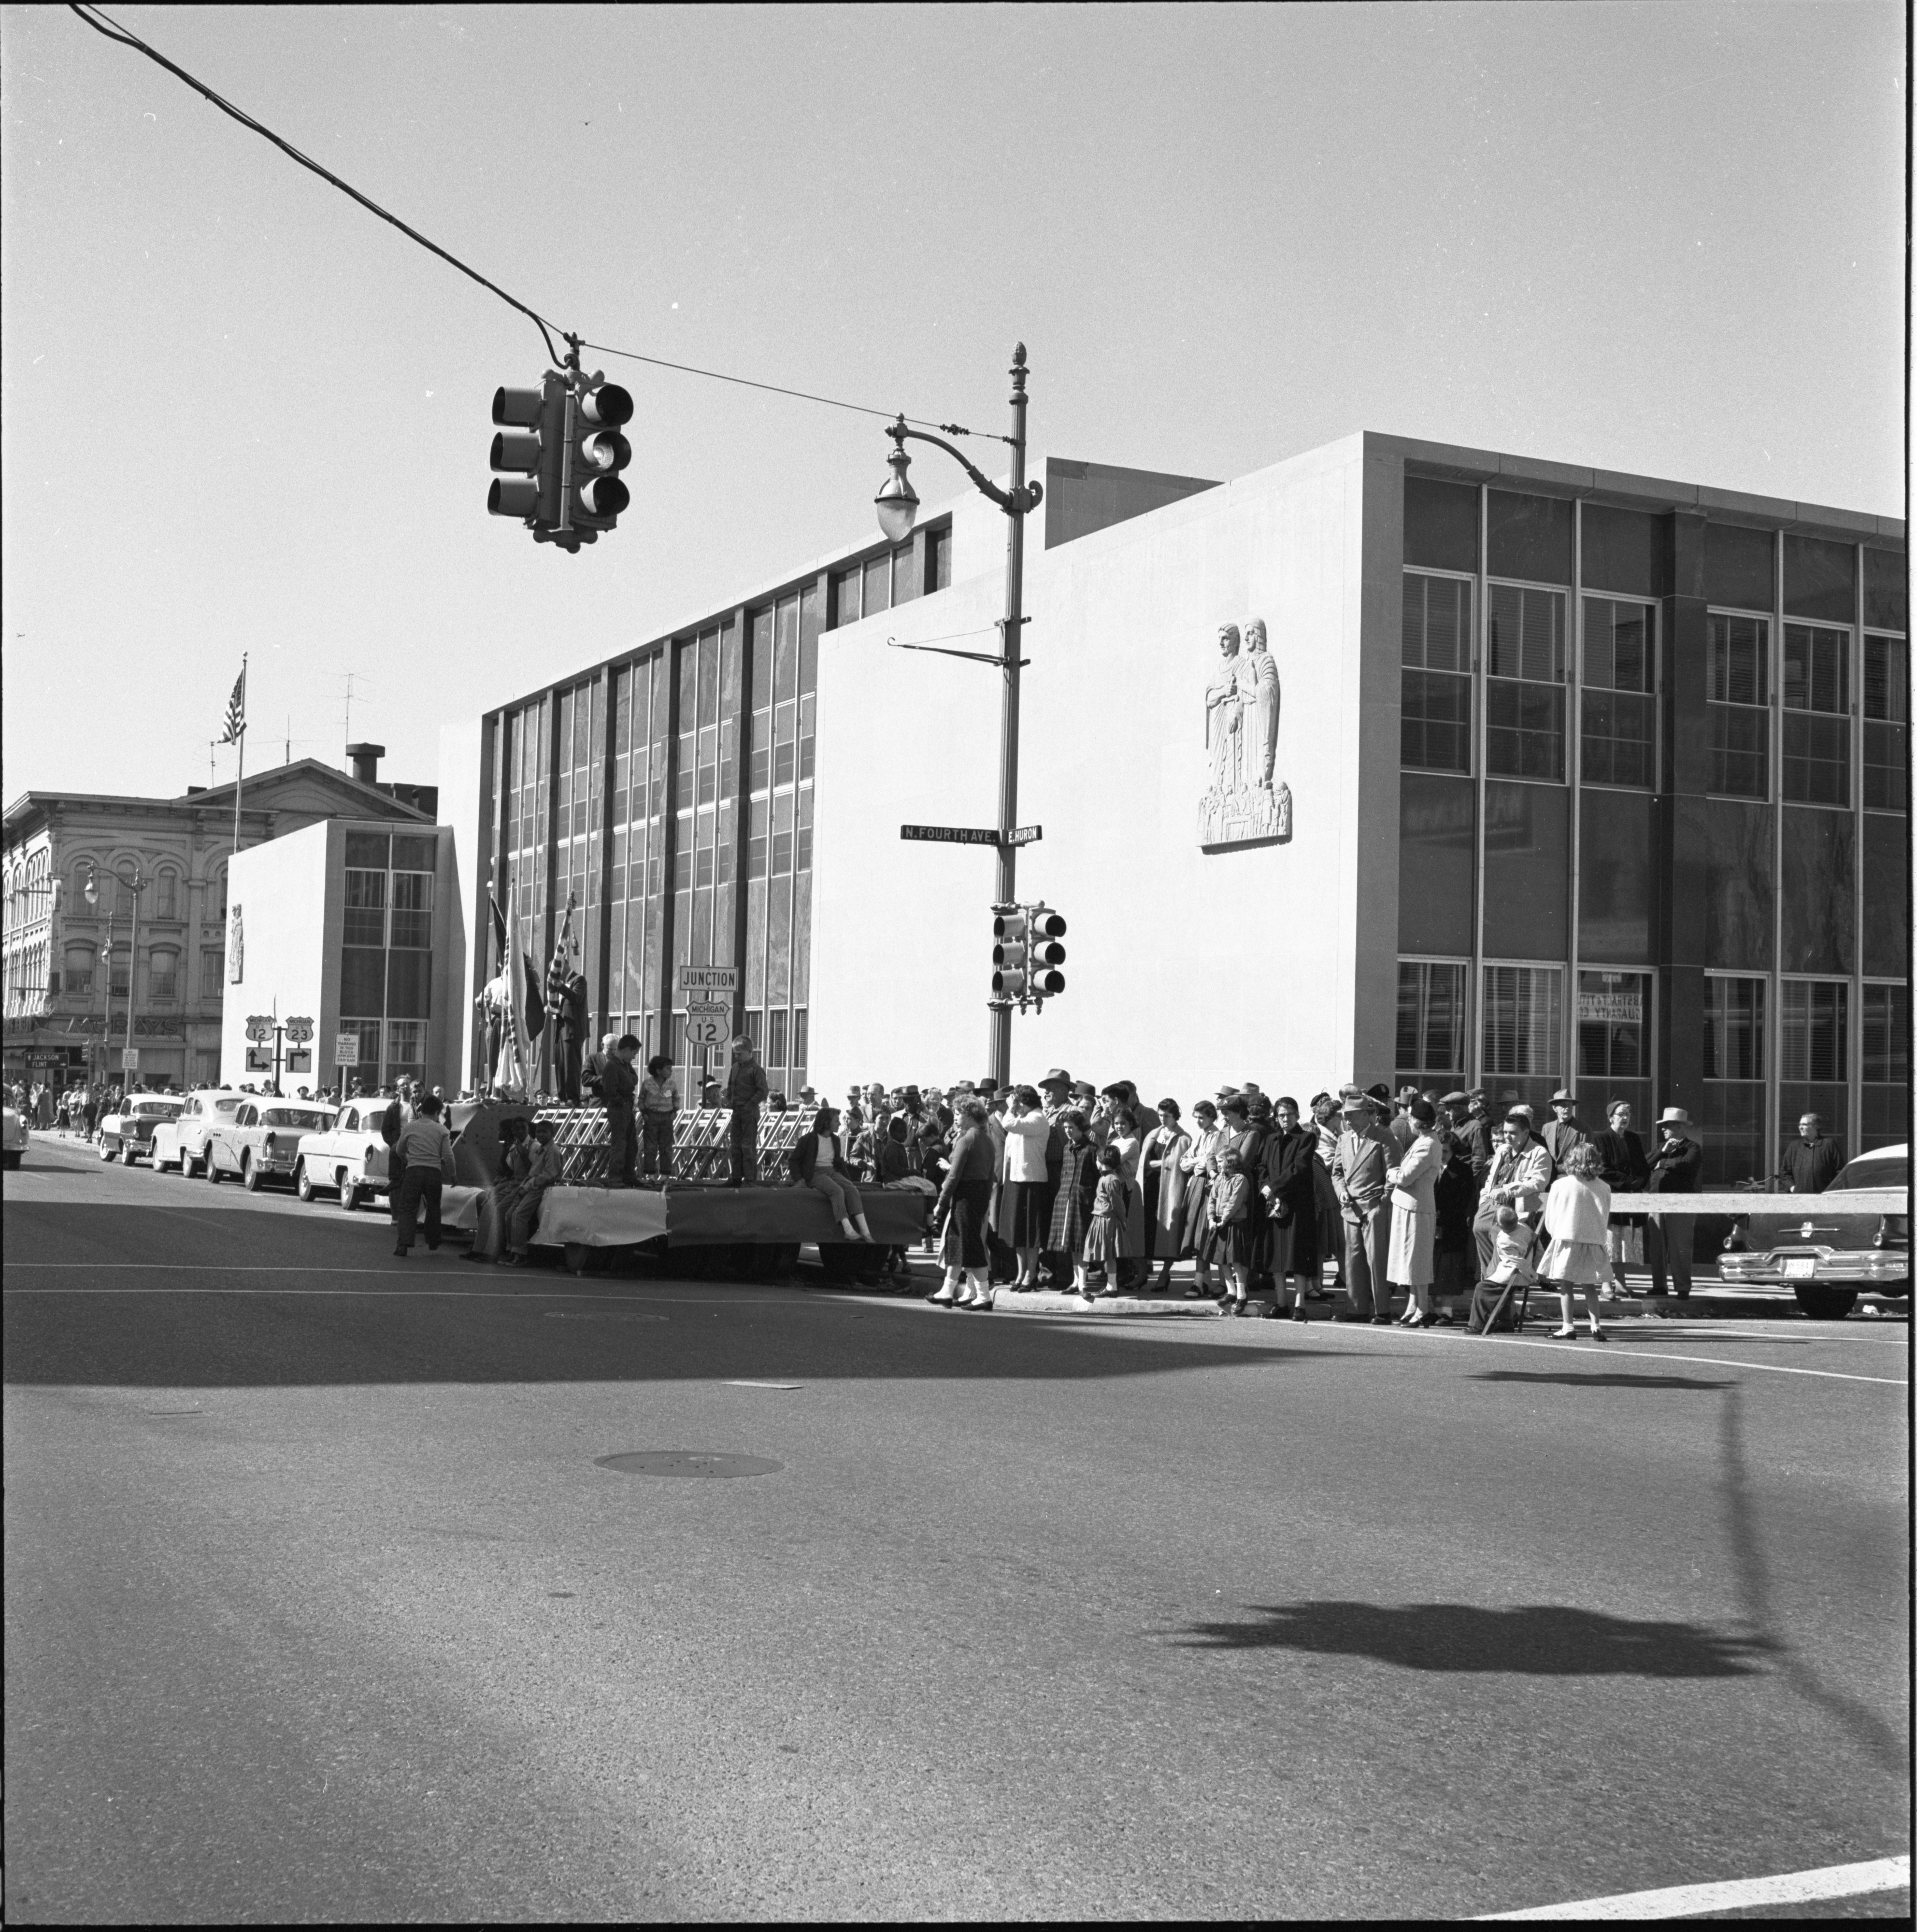 Spectators Line The Parade Route For The Washtenaw County Building Dedication Ceremony, October 1956 image